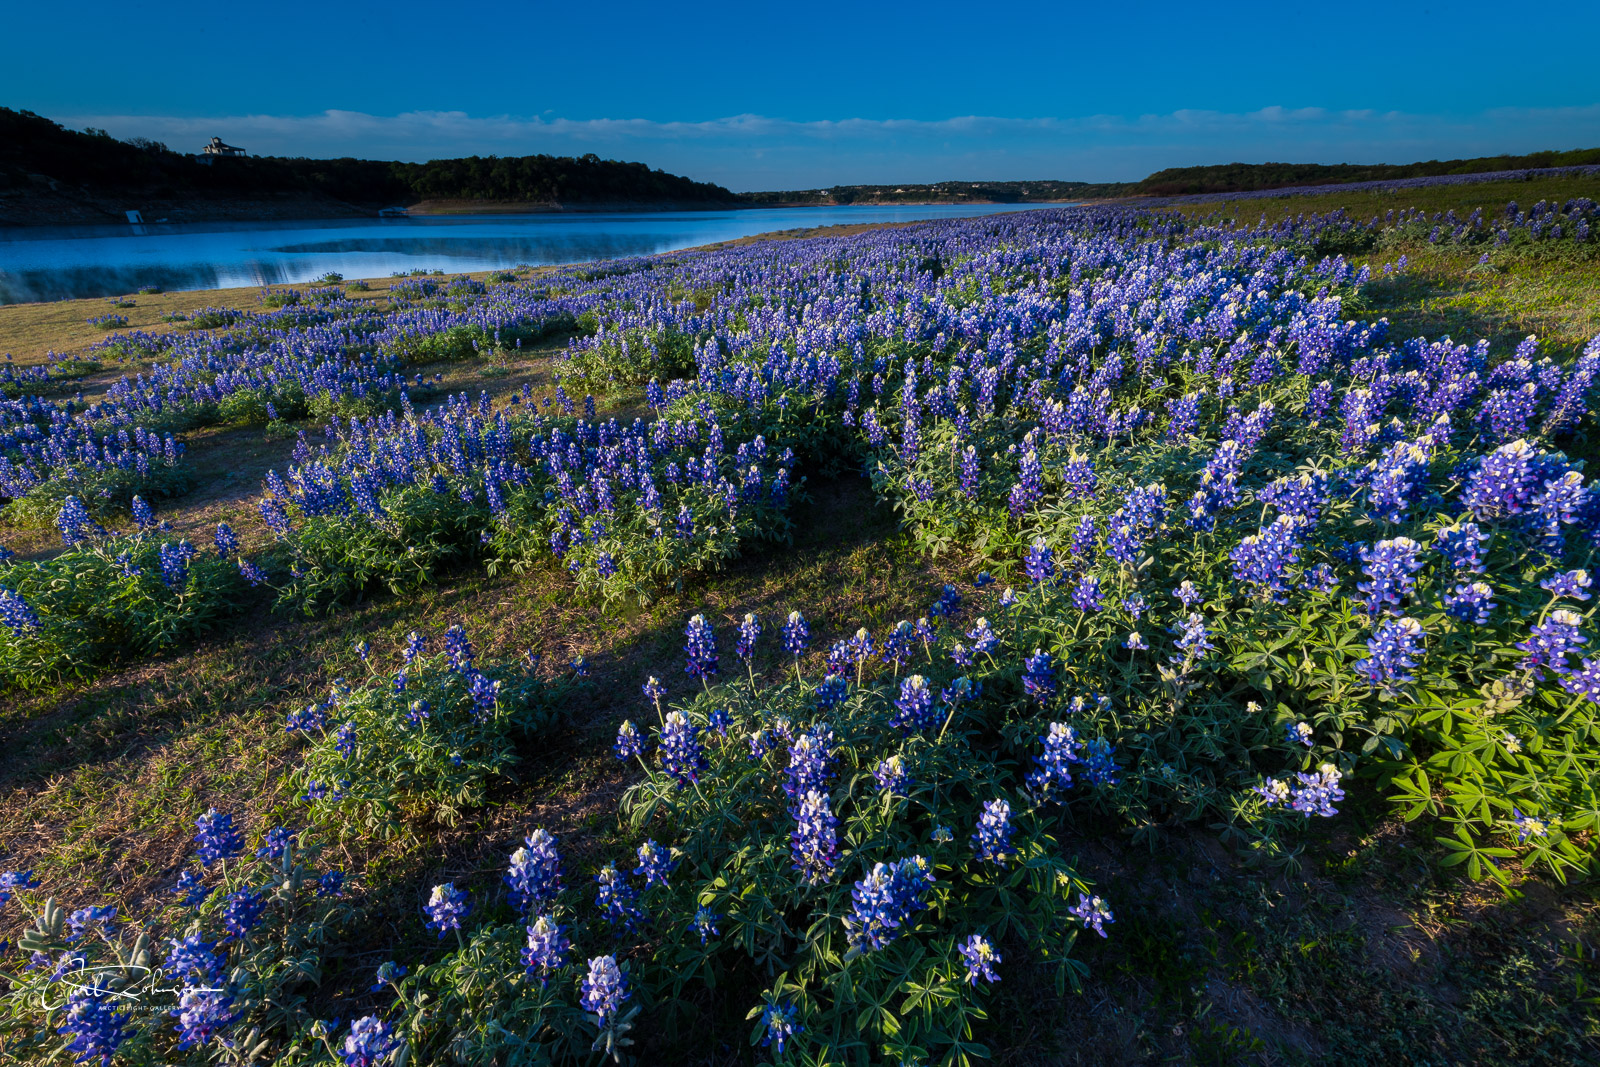 A large patch of bluebonnets catches the morning light along the lower Colorado River near Marble Falls, Texas.